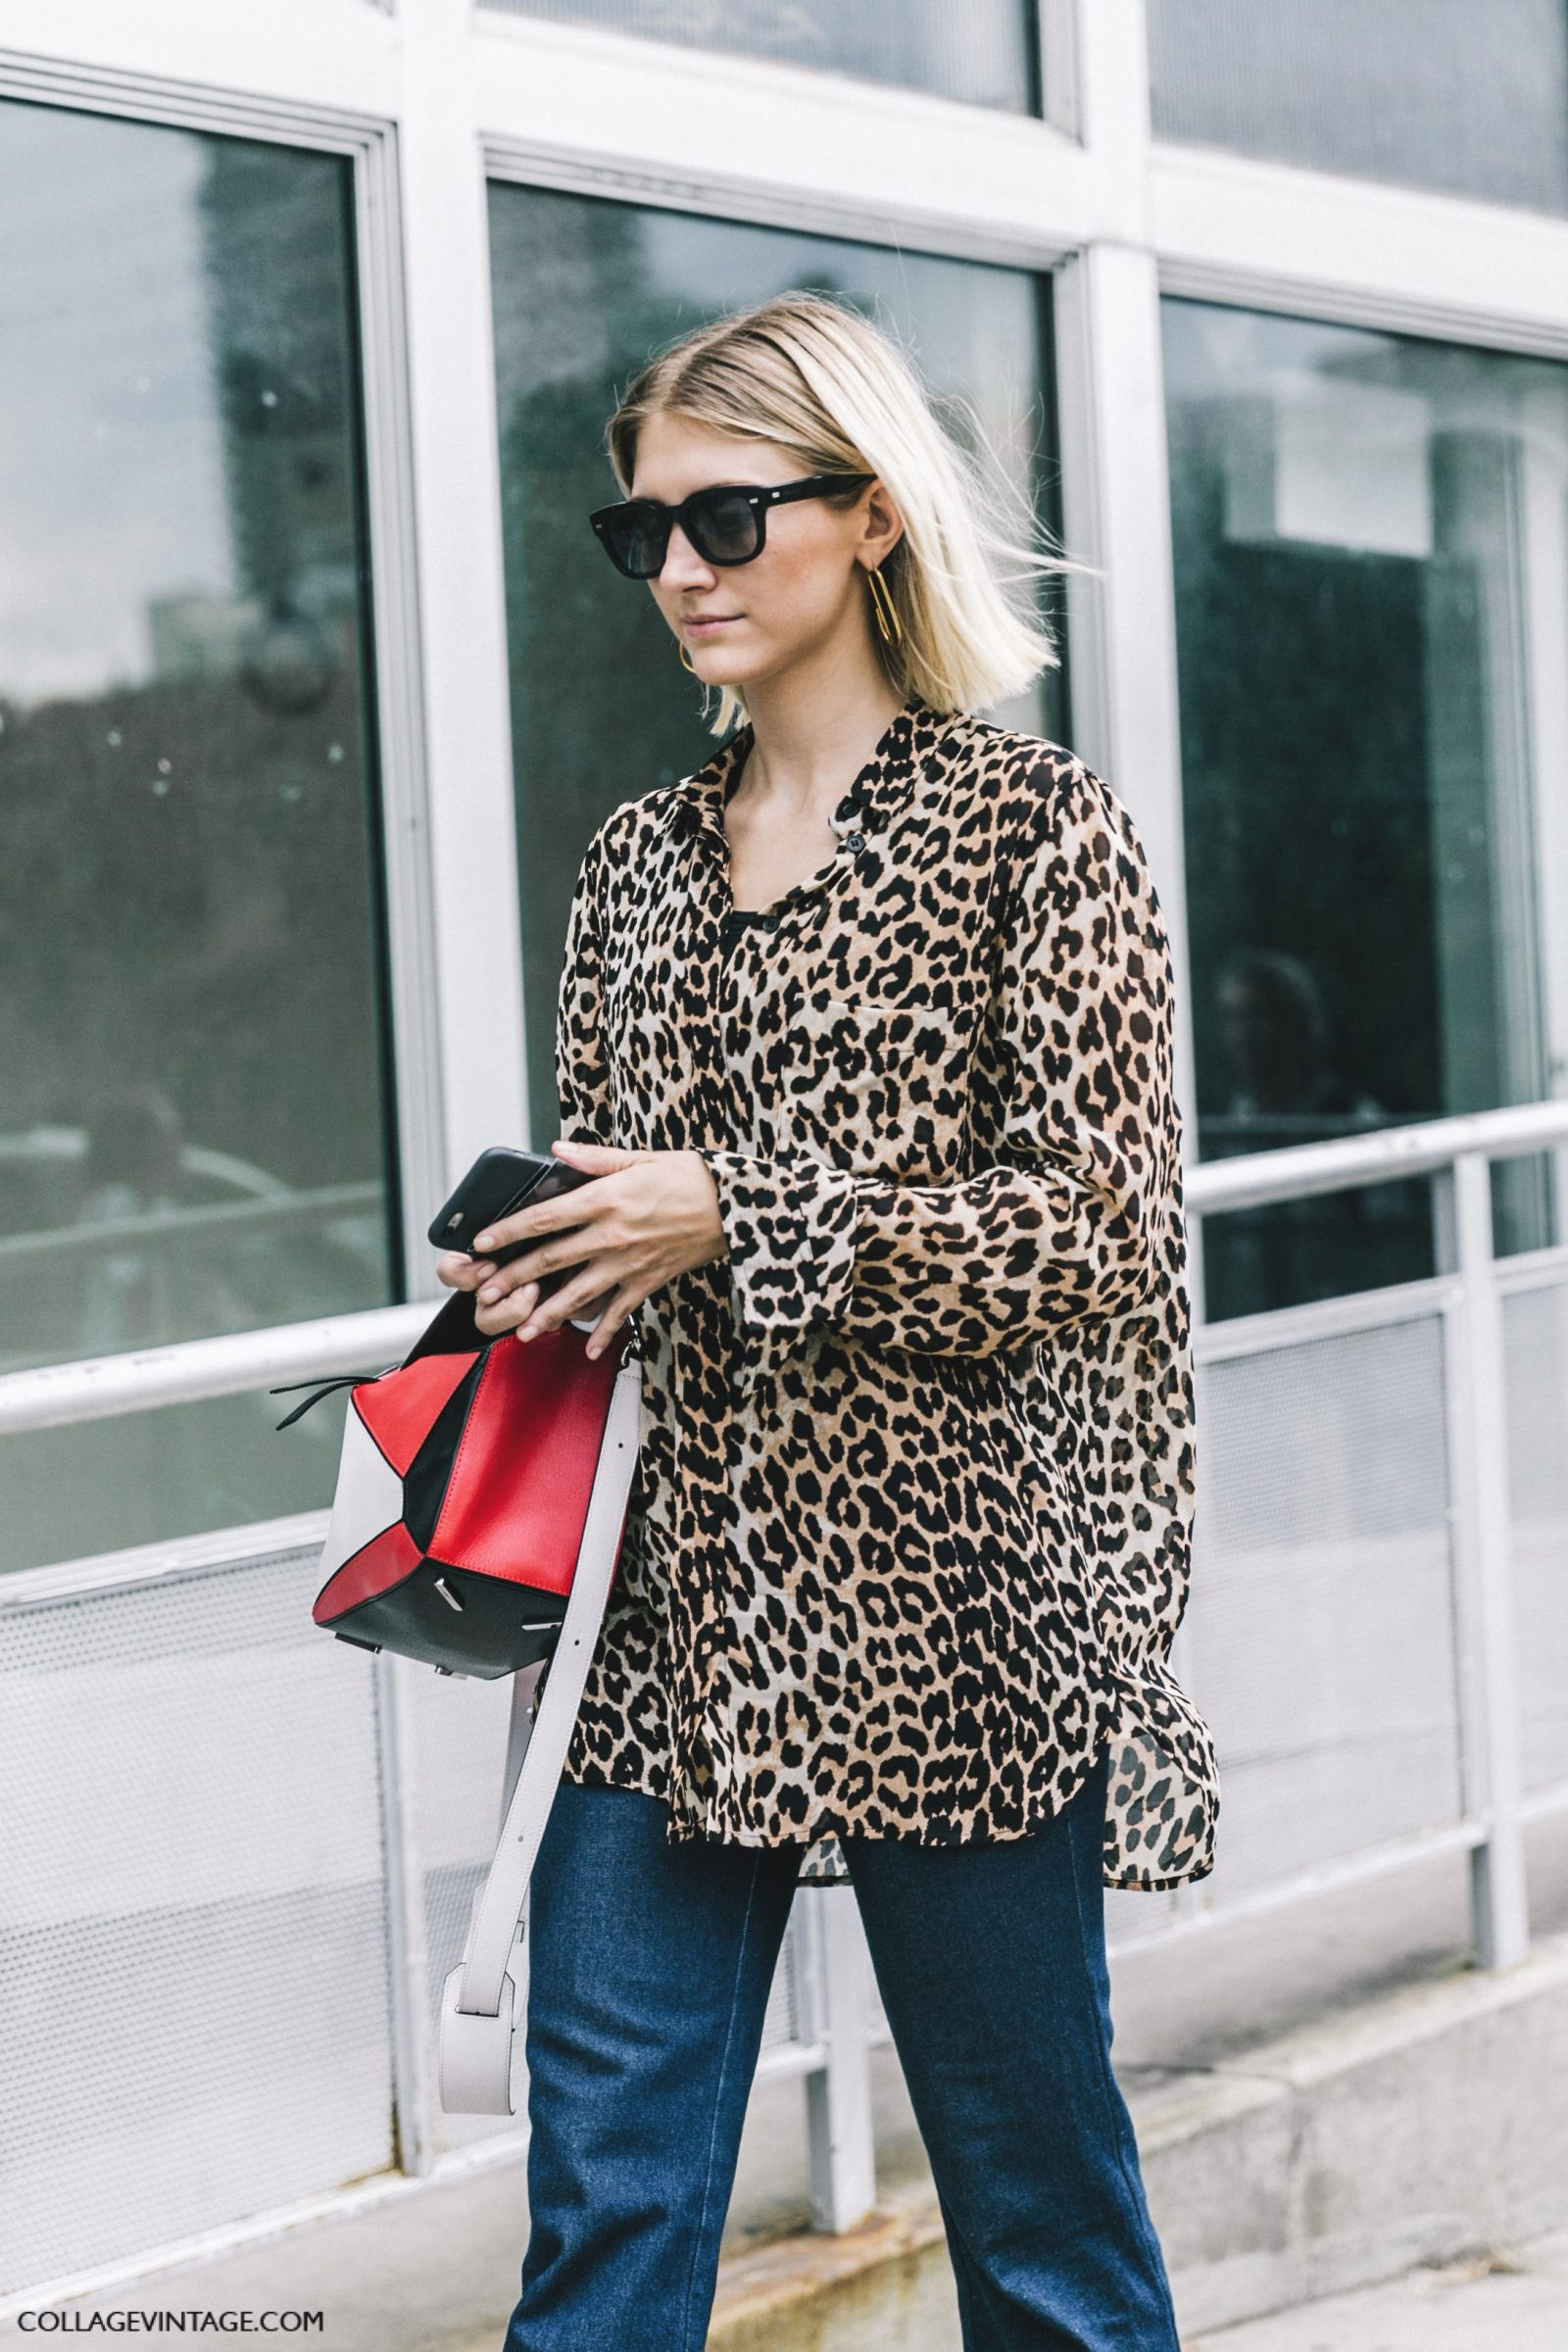 nyfw-new_york_fashion_week_ss17-street_style-outfits-collage_vintage-leopard_blouse-jeans-puzzle_bag_loewe